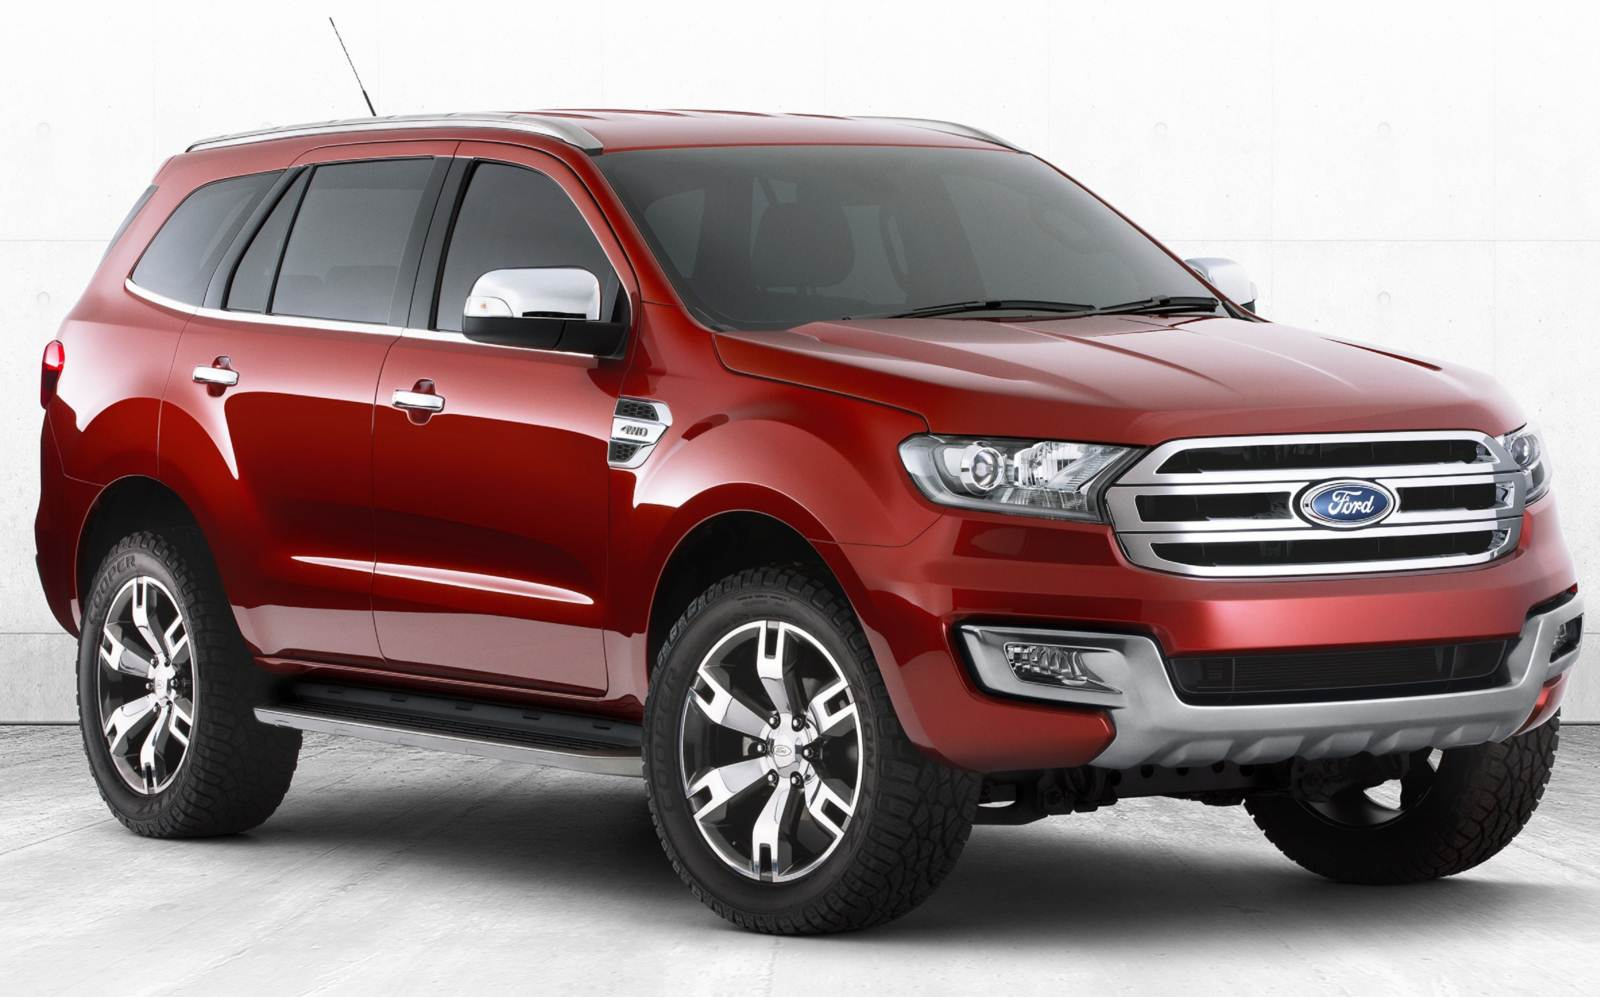 Novo Ford Everest 2015